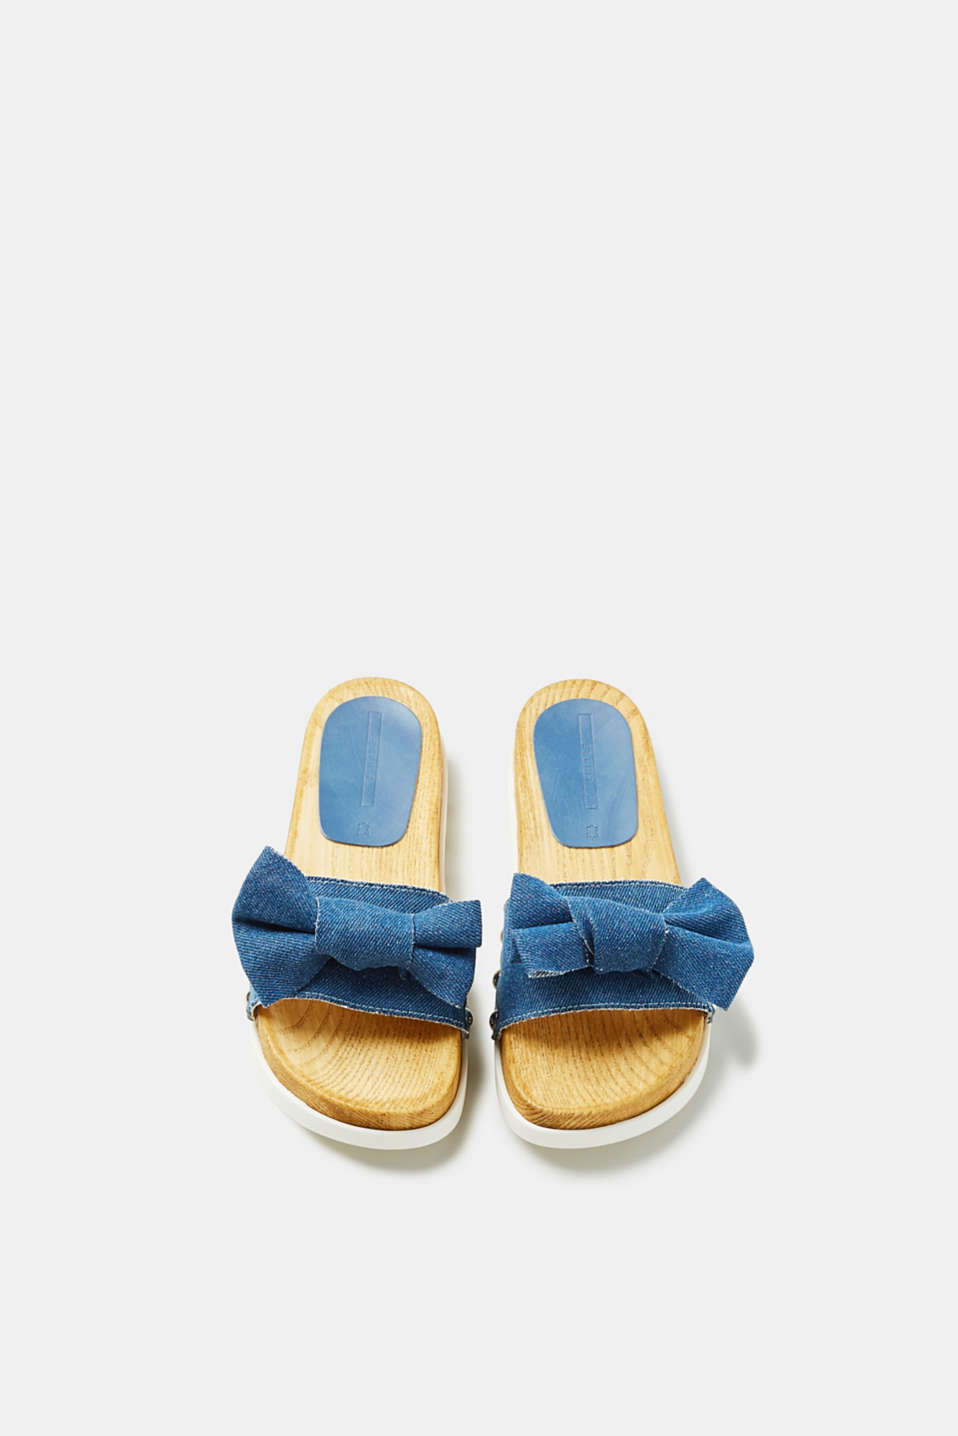 Denim mules with a platform sole in a wooden look